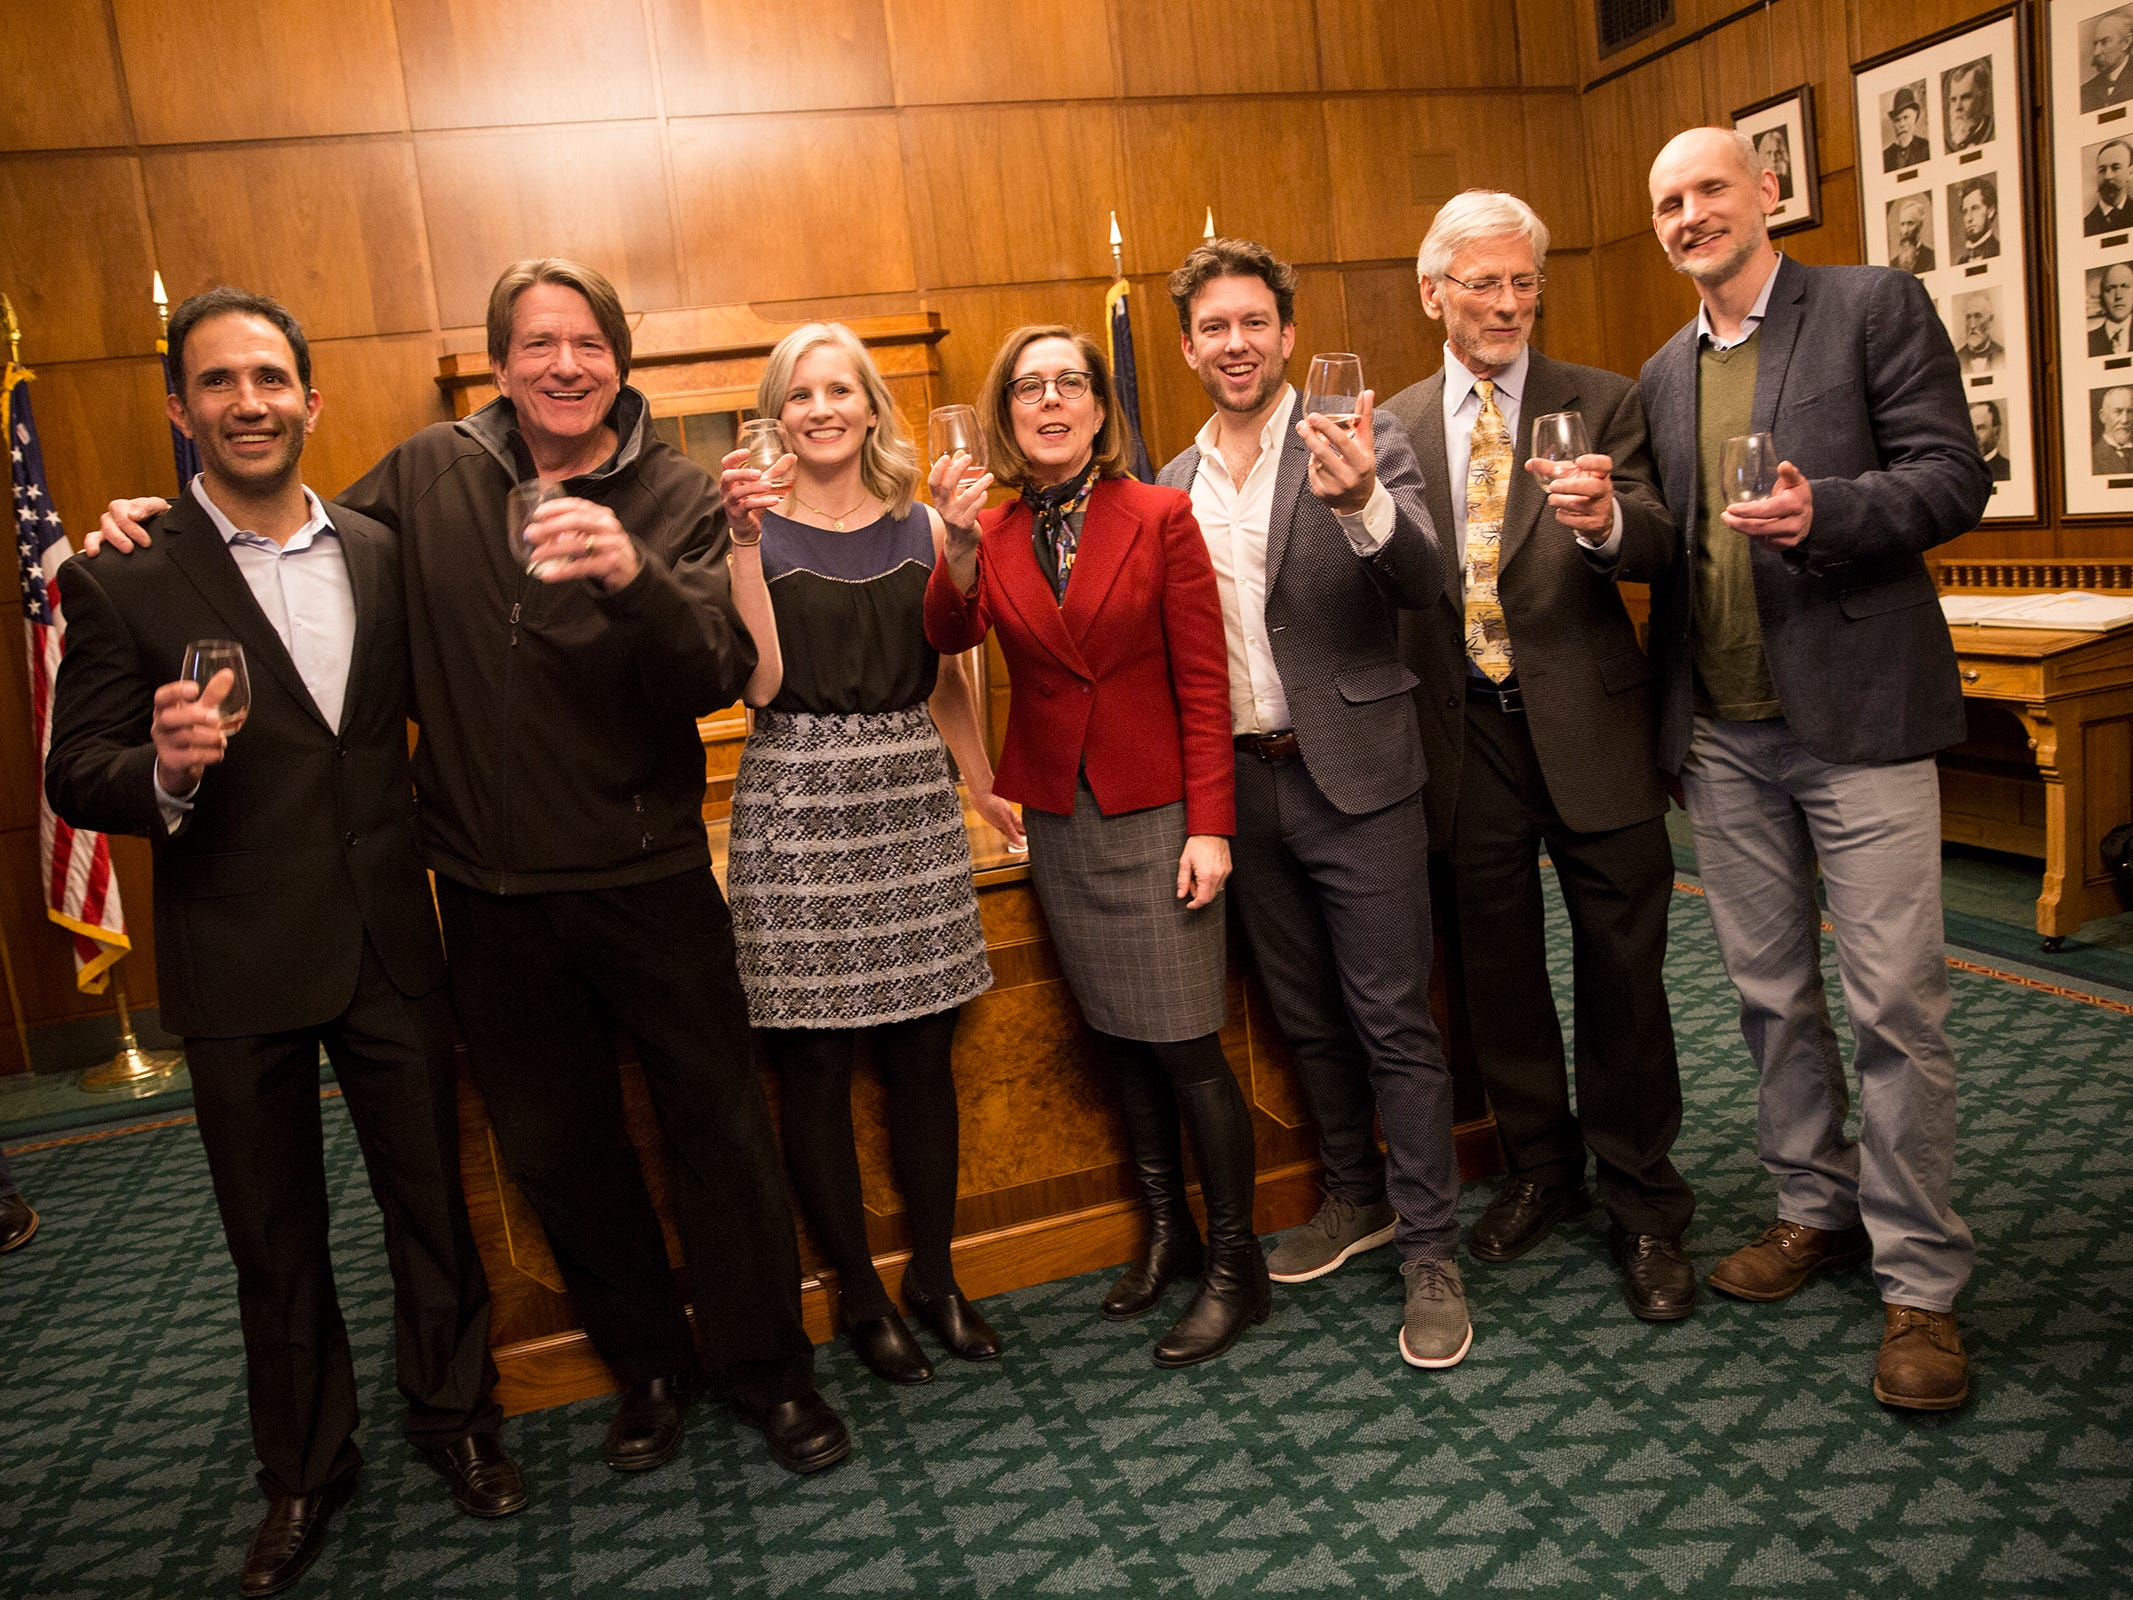 Gov. Kate Brown takes a photo with Oregon winery representatives at a release party for the Oregon Solidarity Rose of Pinot Noir in the Governor's ceremonial office at the Oregon State Capitol in Salem on Tuesday, March 5, 2019.